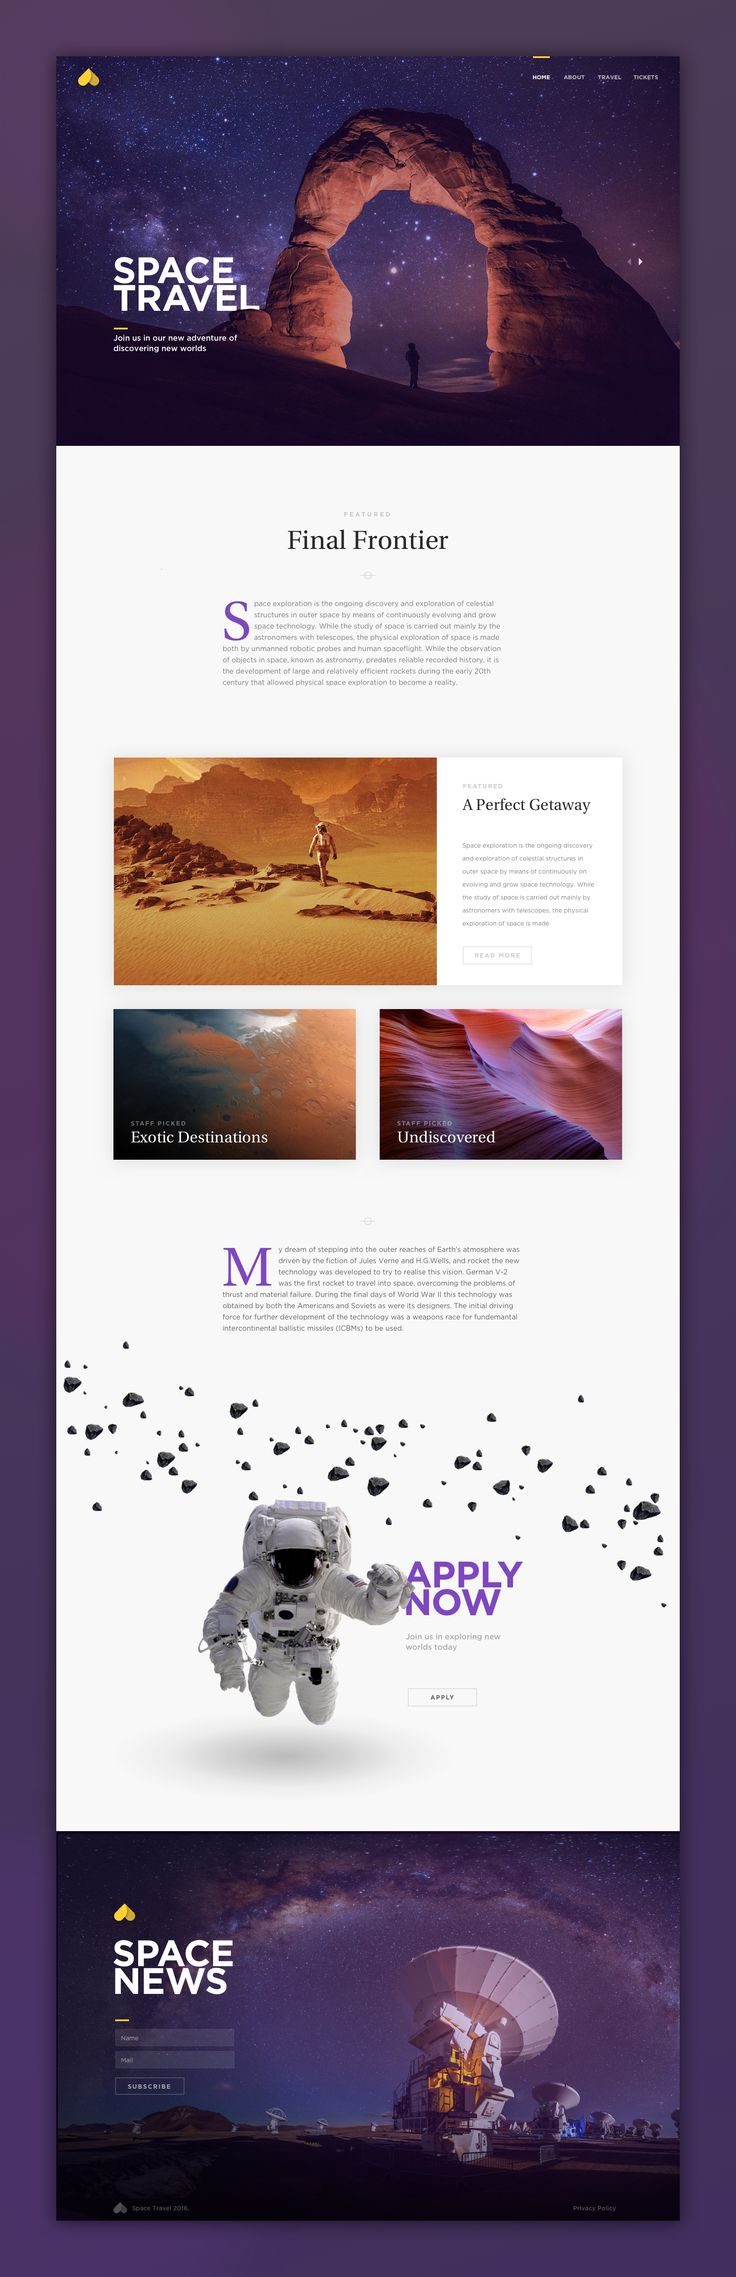 Beautiful! Photography with impact meets clean layout with excellent type.